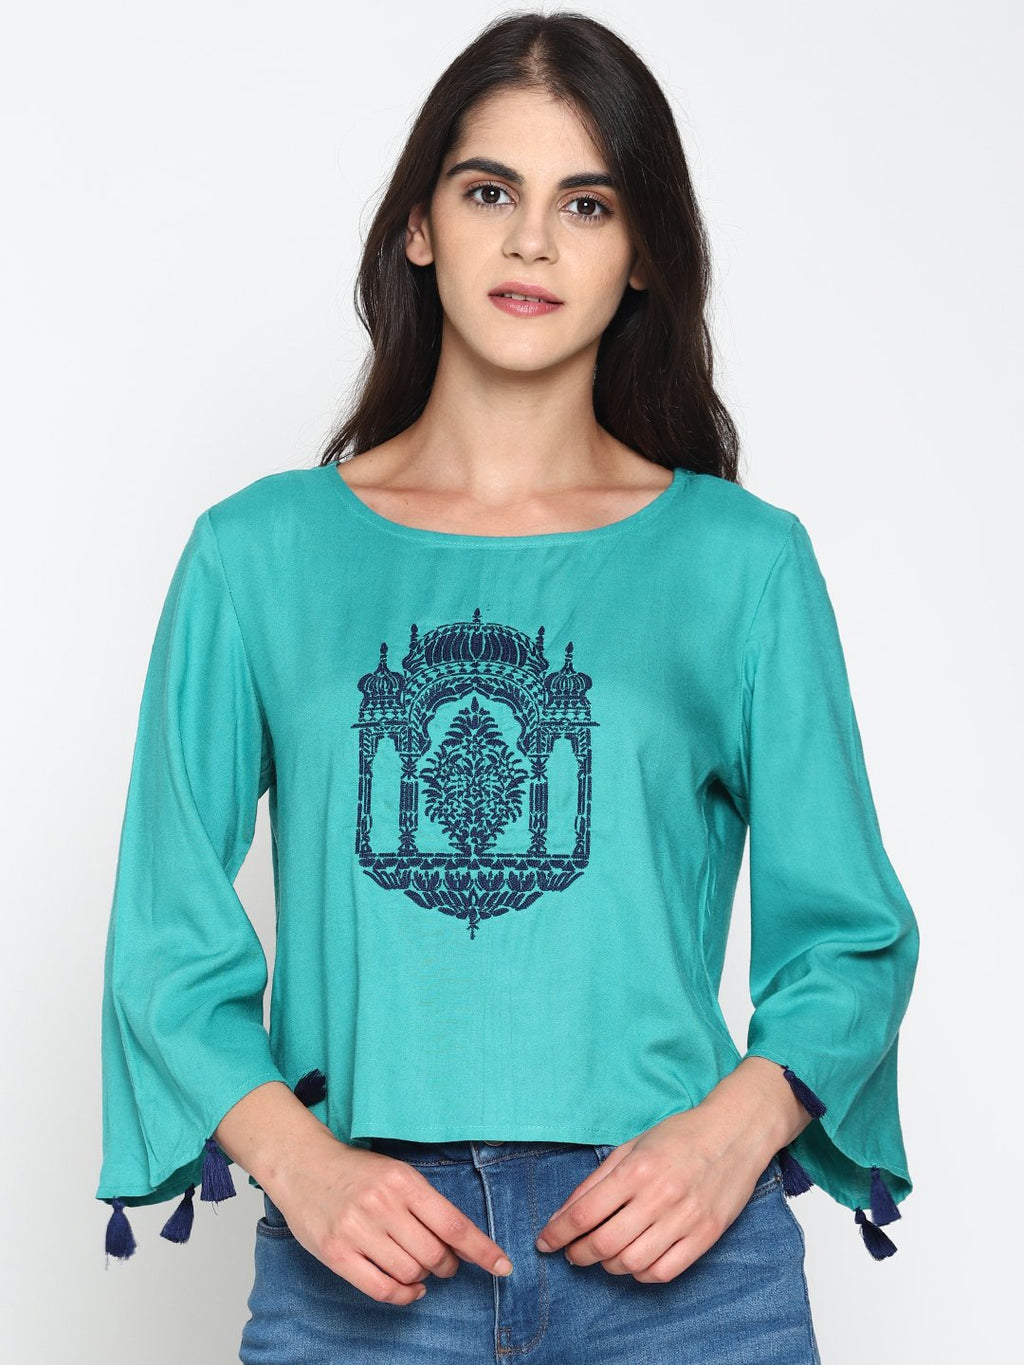 Teal Temple Embroidered Crop Top With Tassels | Untung